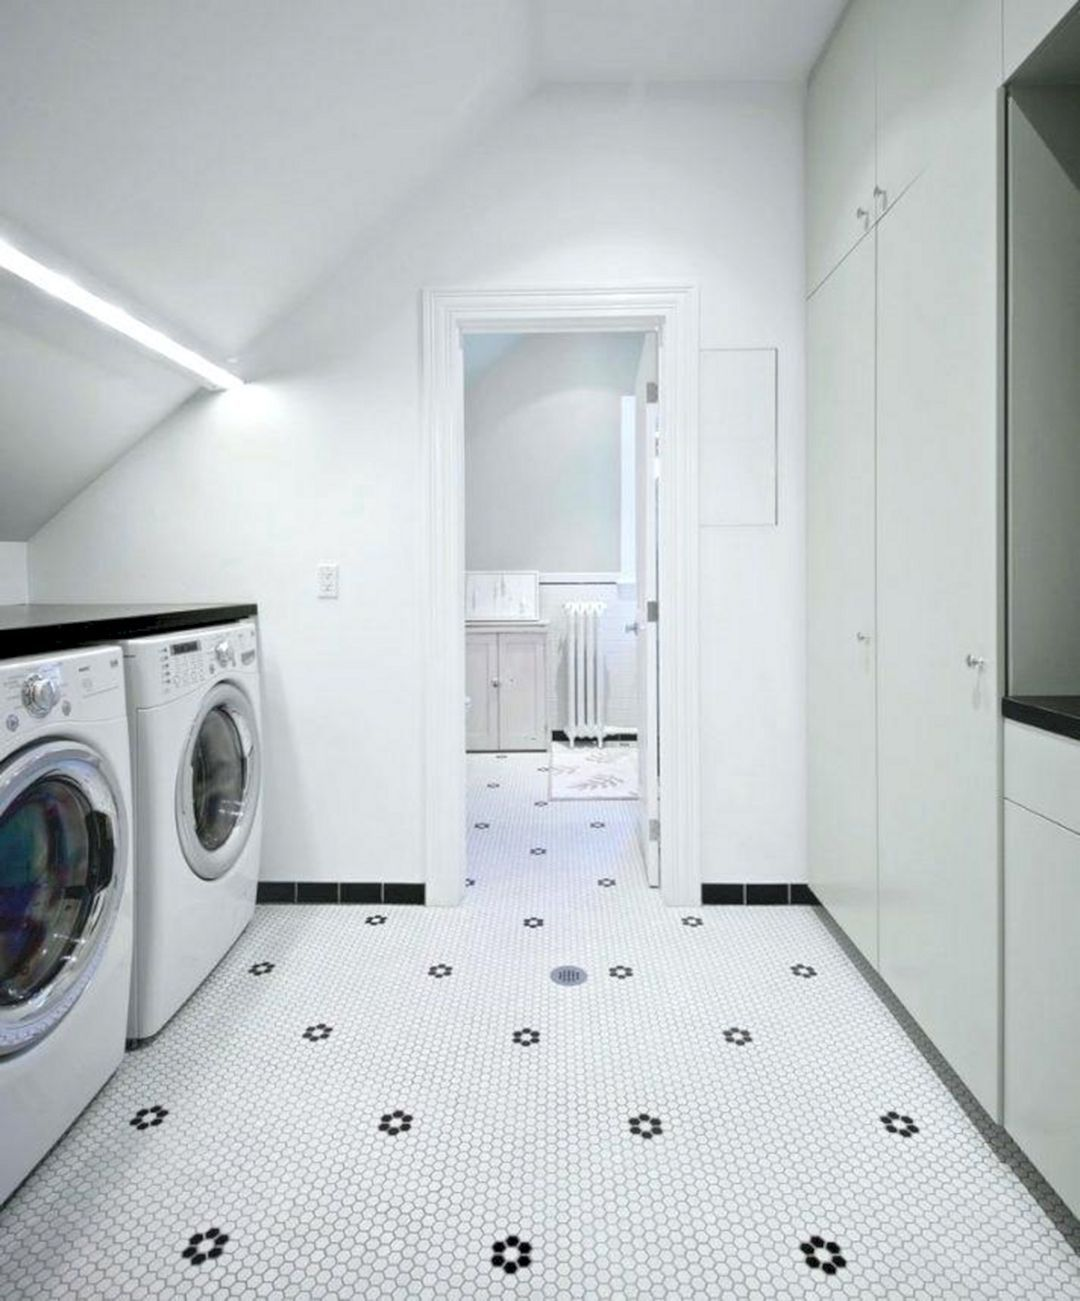 12 Marvelous Laundry Room Design With Stunning Storage